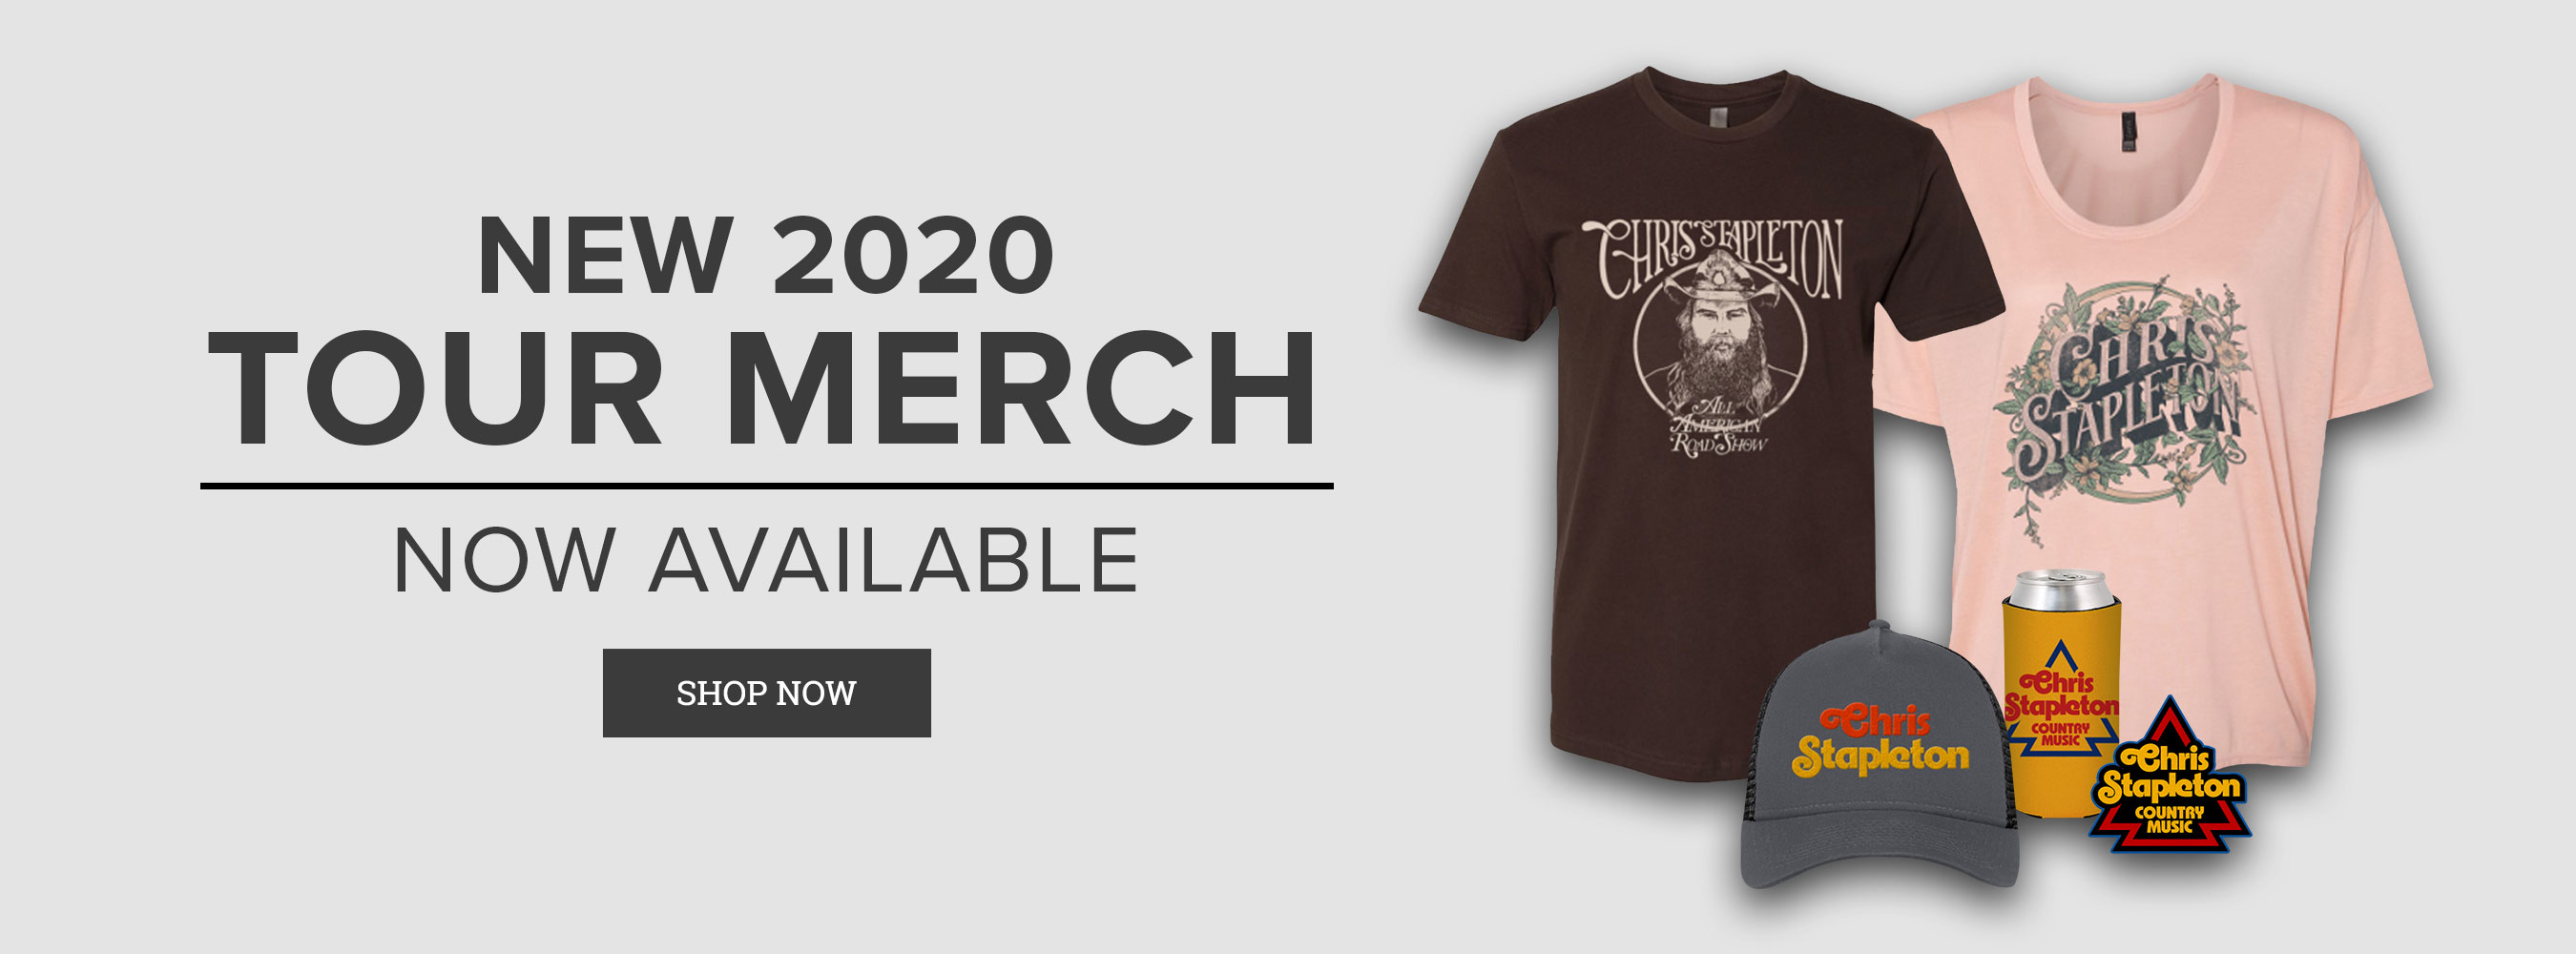 New 2020 Tour Merch!